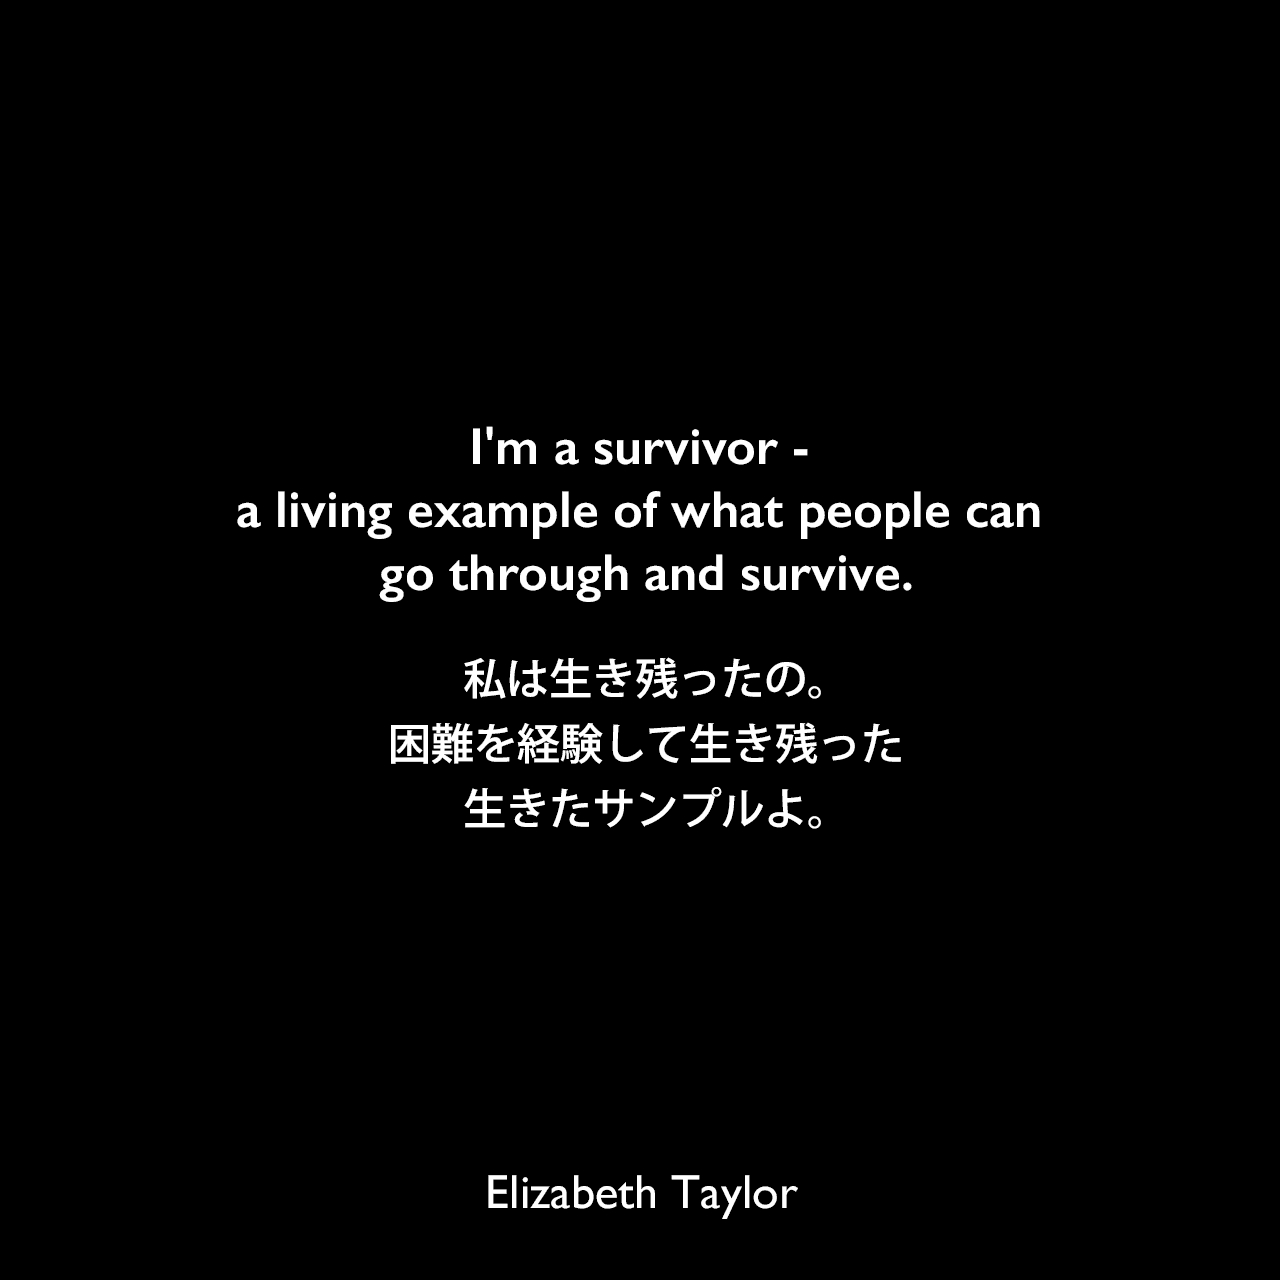 I'm a survivor - a living example of what people can go through and survive.私は生き残ったの。困難を経験して生き残った生きたサンプルよ。Elizabeth Taylor